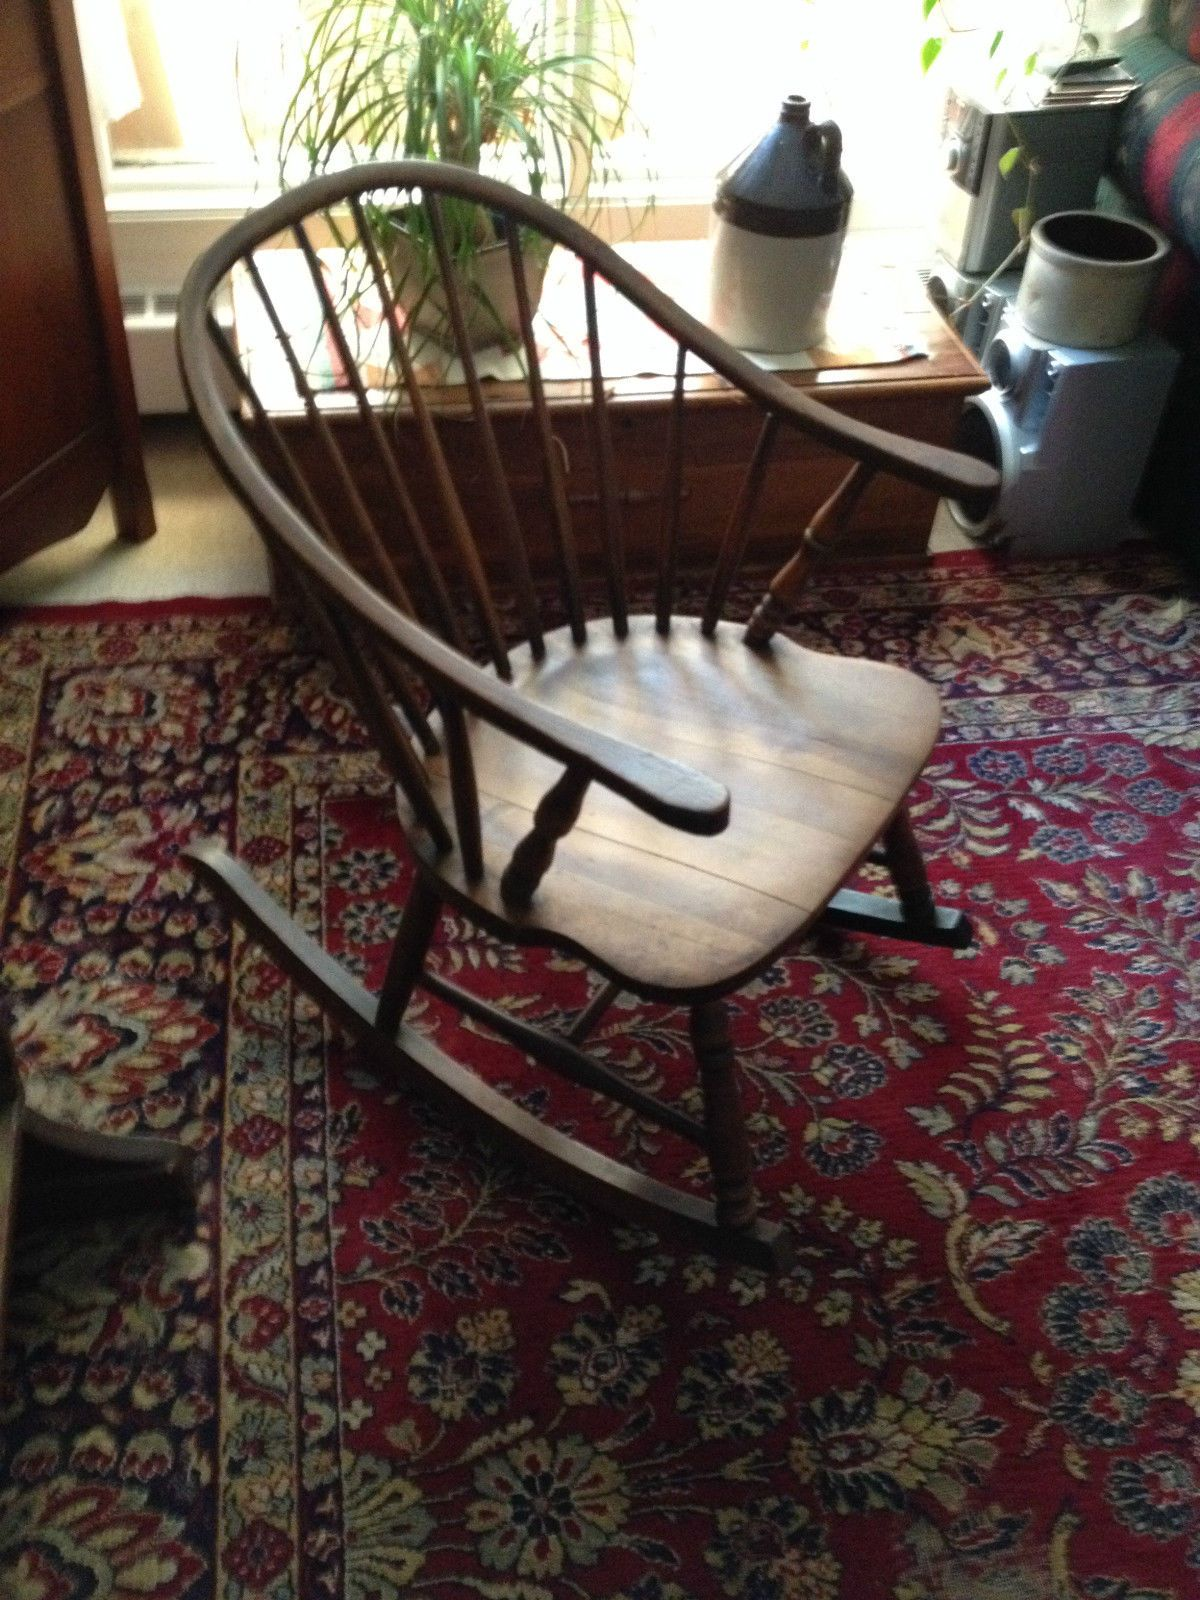 Gorgeous Antique Windsor Rocking Chair in Antiques, Furniture, Chairs, 1900-1950  | - Gorgeous Antique Windsor Rocking Chair In Antiques, Furniture